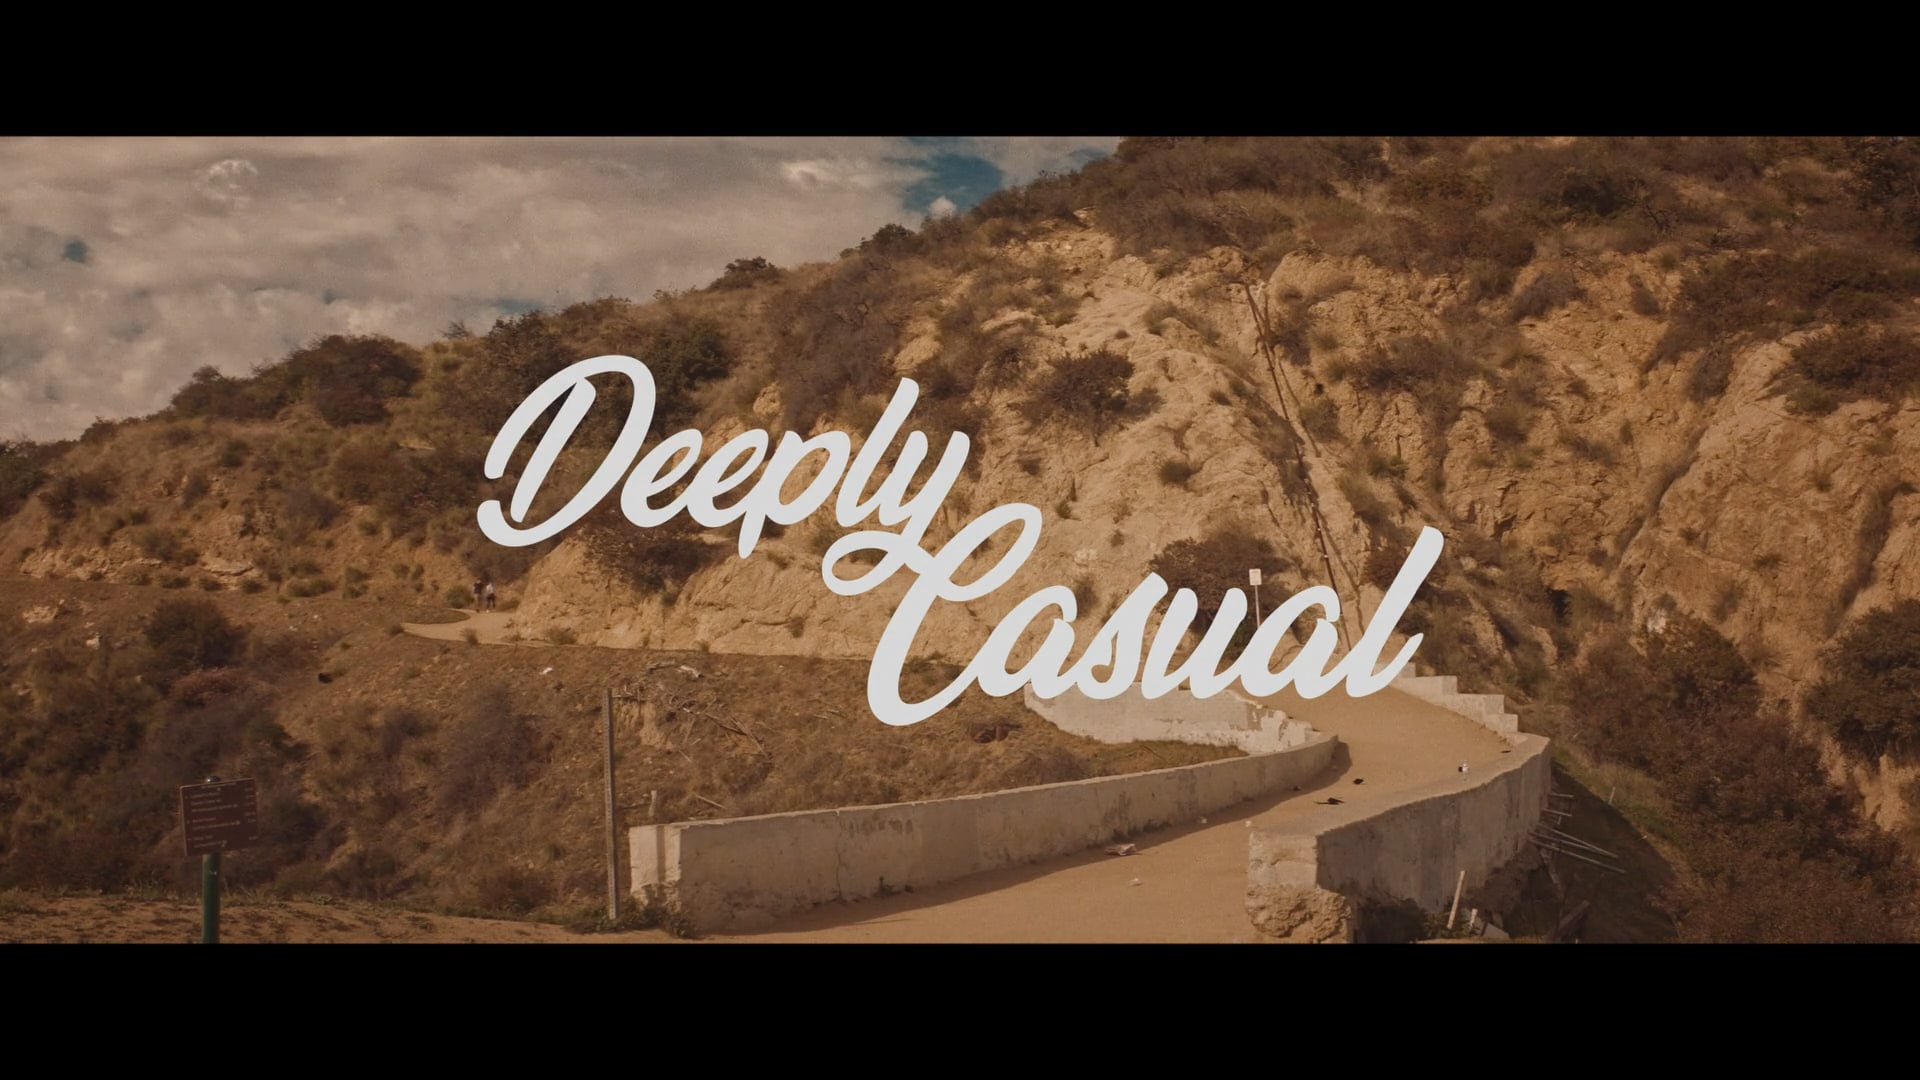 Deeply Casual